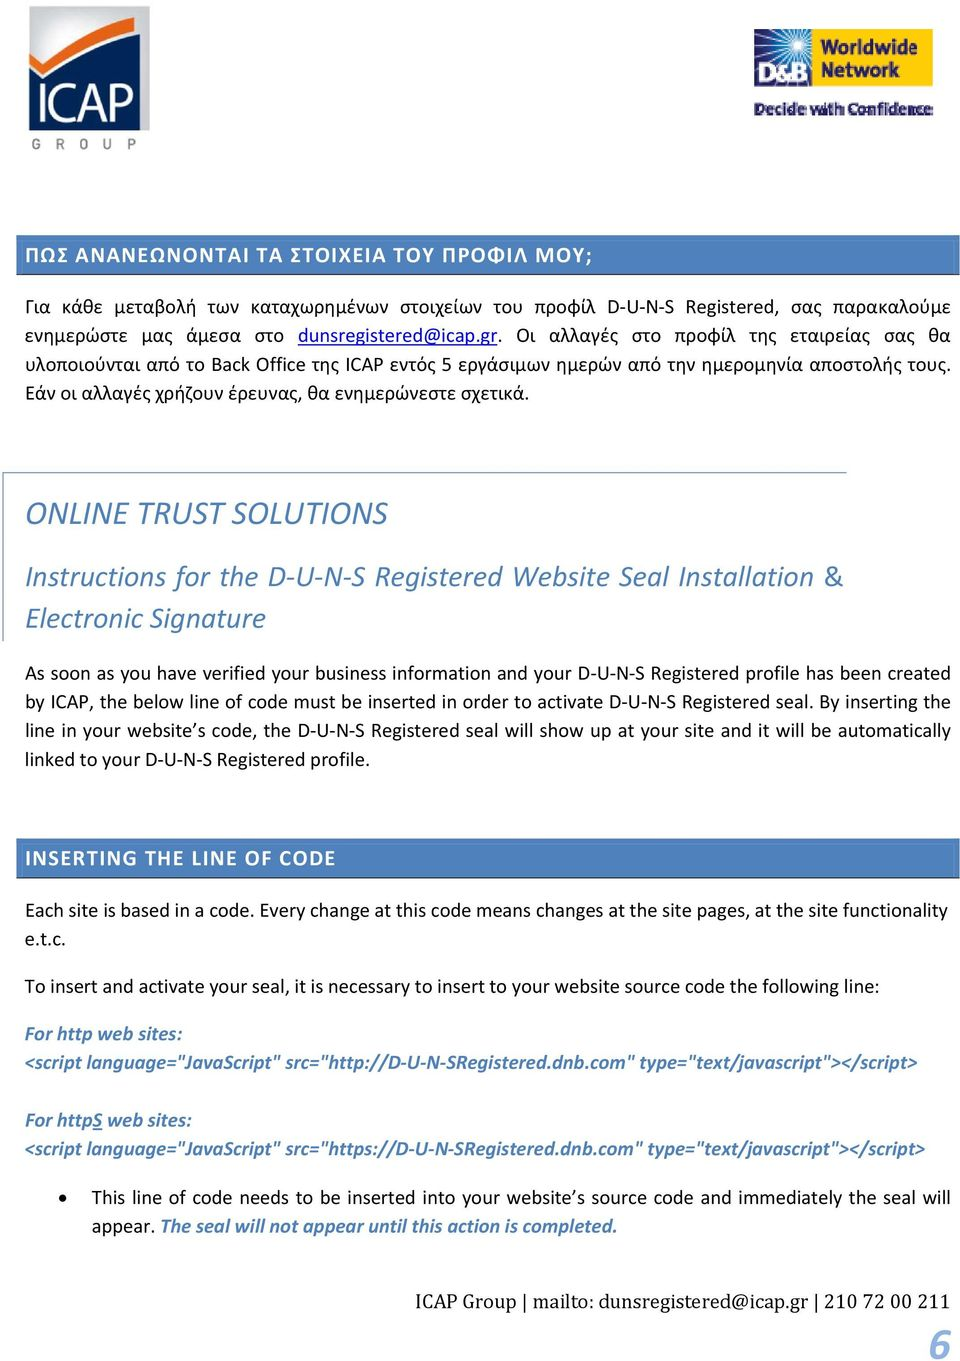 ONLINE TRUST SOLUTIONS Instructions for the D U N S Registered Website Seal Installation & Electronic Signature As soon as you have verified your business information and your D U N S Registered